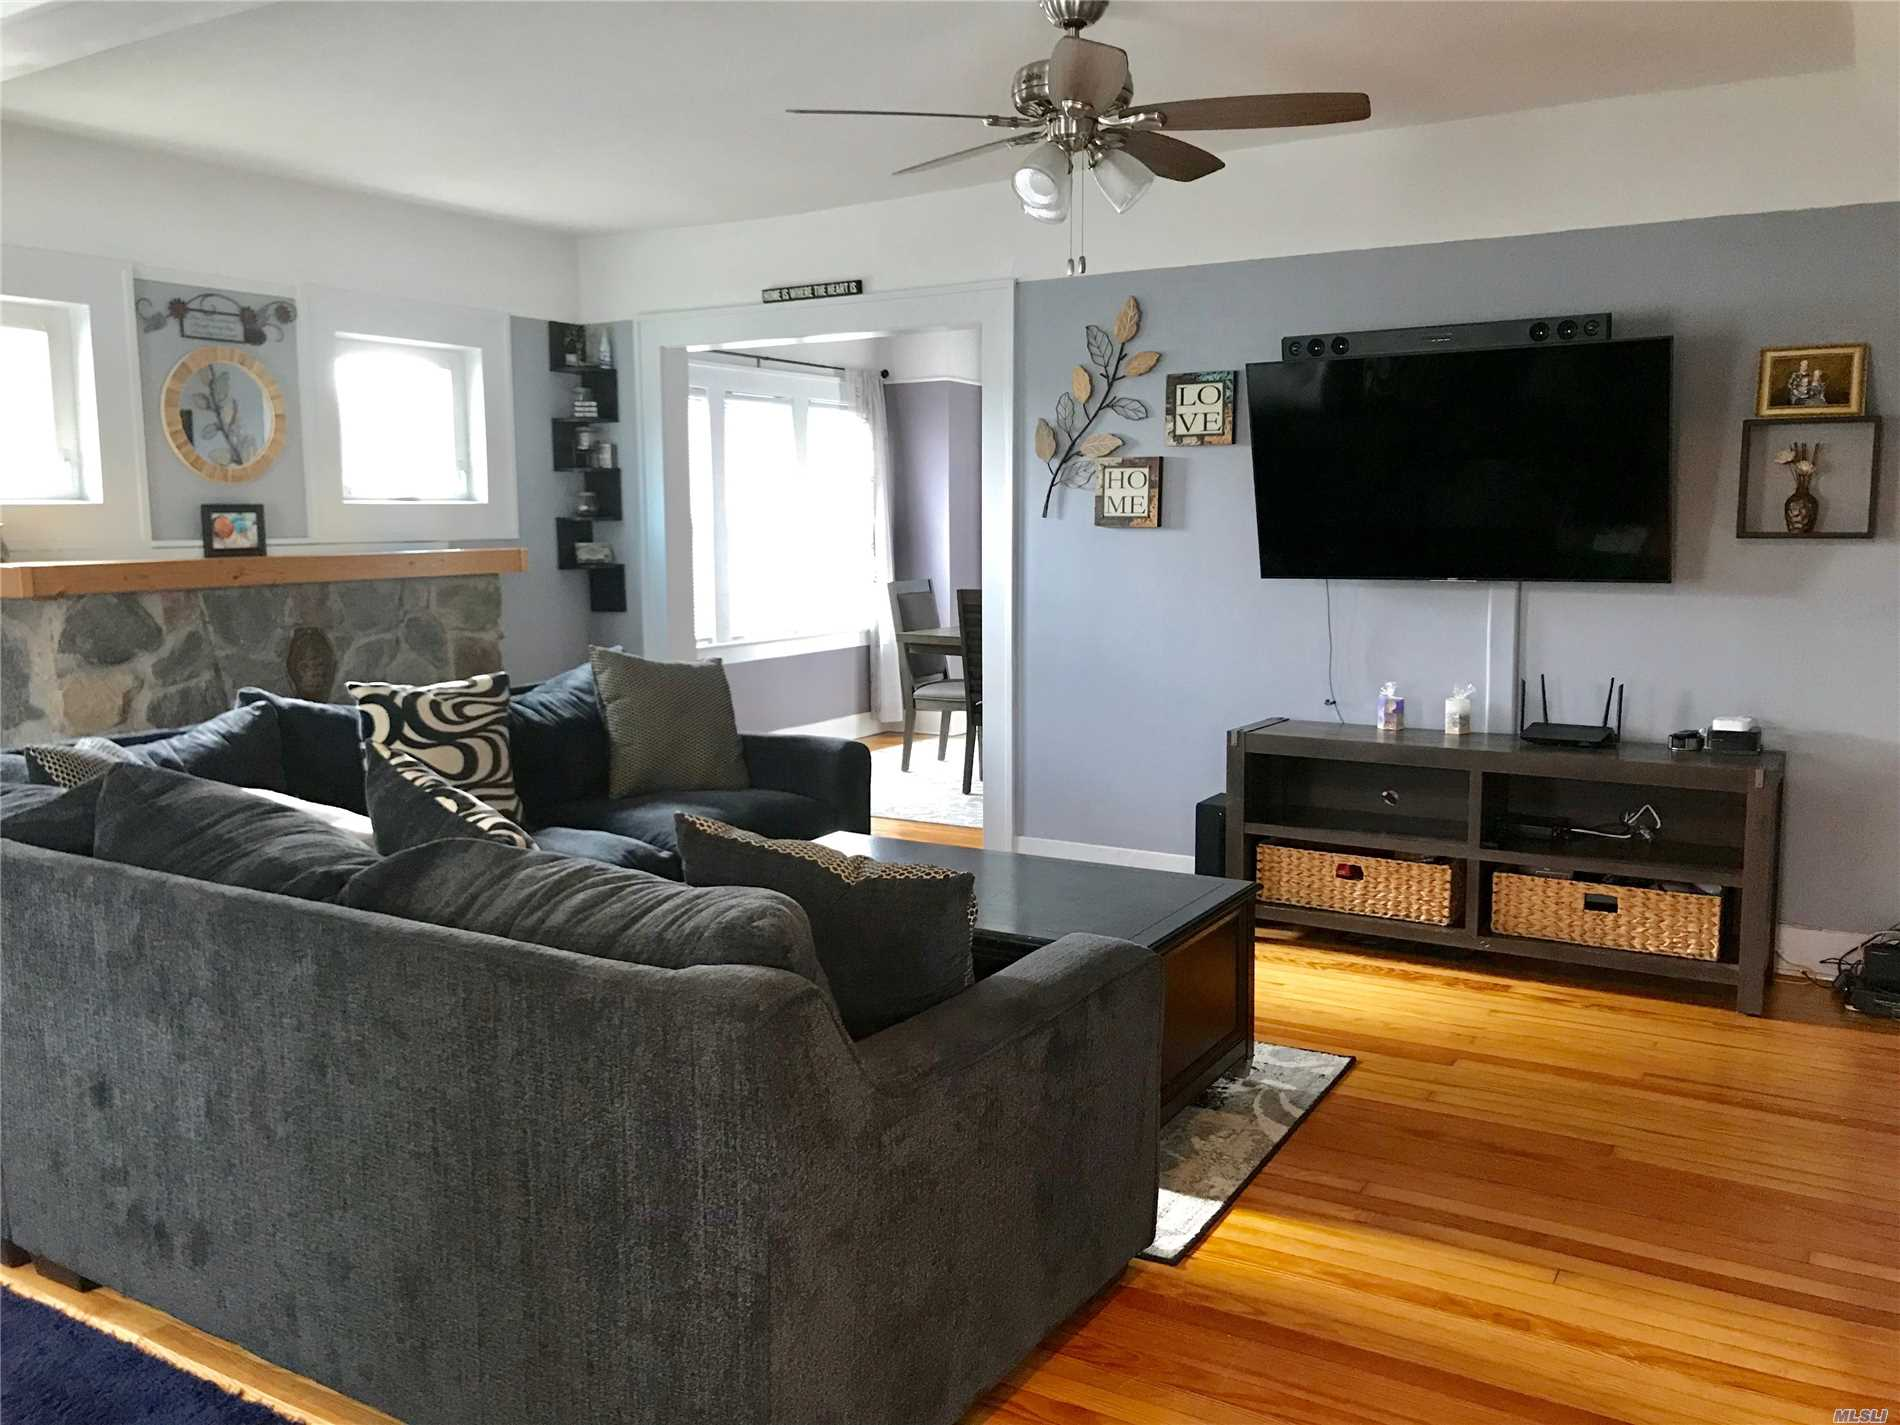 Perfect For First Time Home Buyers! Plenty Of Space To Expand. Beautiful 2 Bedroom Colonial With New Vanity And New Carpets In Bedrooms. Spacious Backyard And Great School District. Close To Shops, Restaurants And Minutes To Parkway!